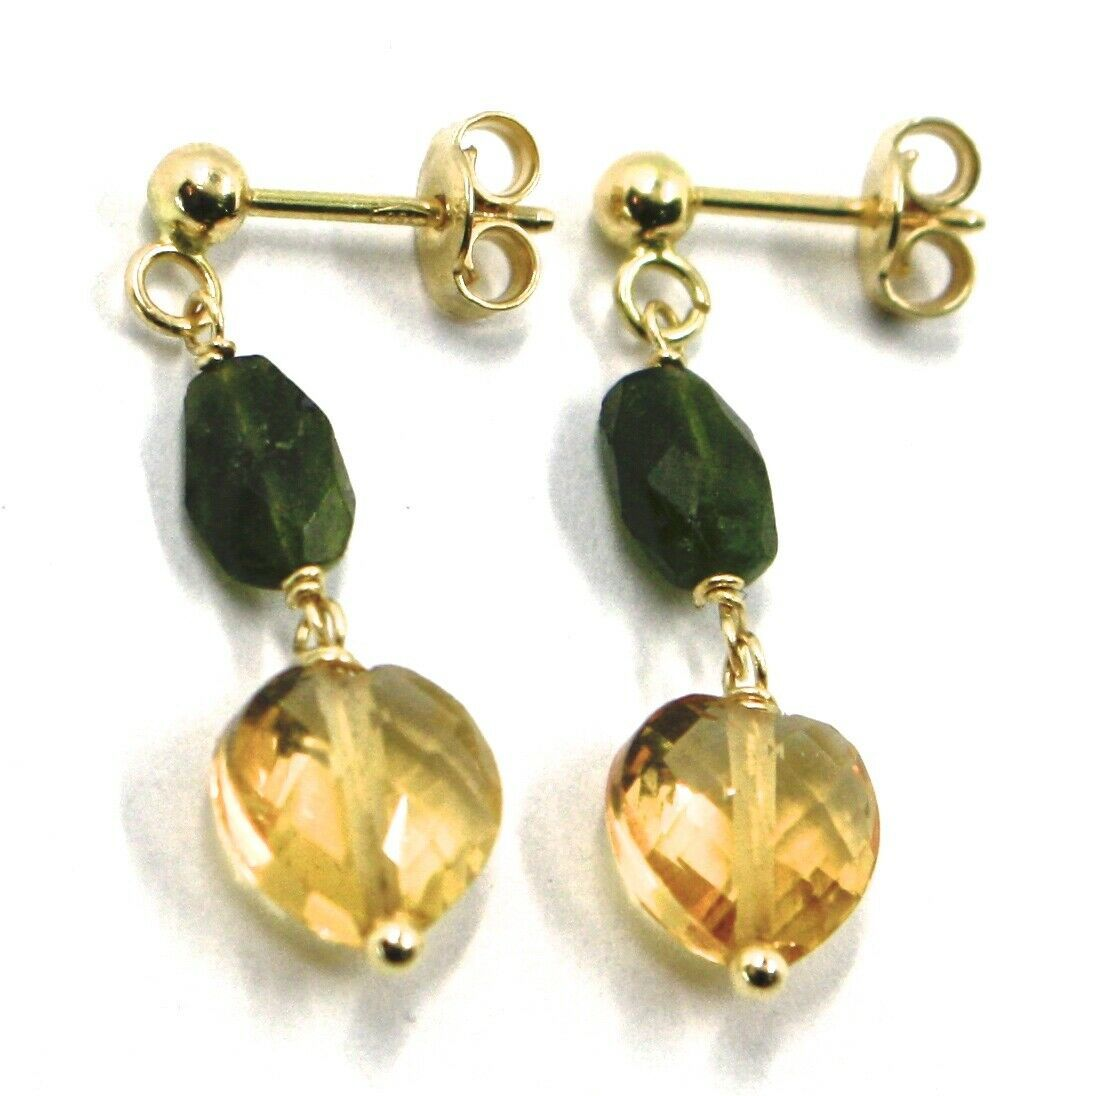 18K YELLOW GOLD PENDANT EARRINGS, HEART CITRINE AND GREEN TOURMALINE 1.0 INCHES